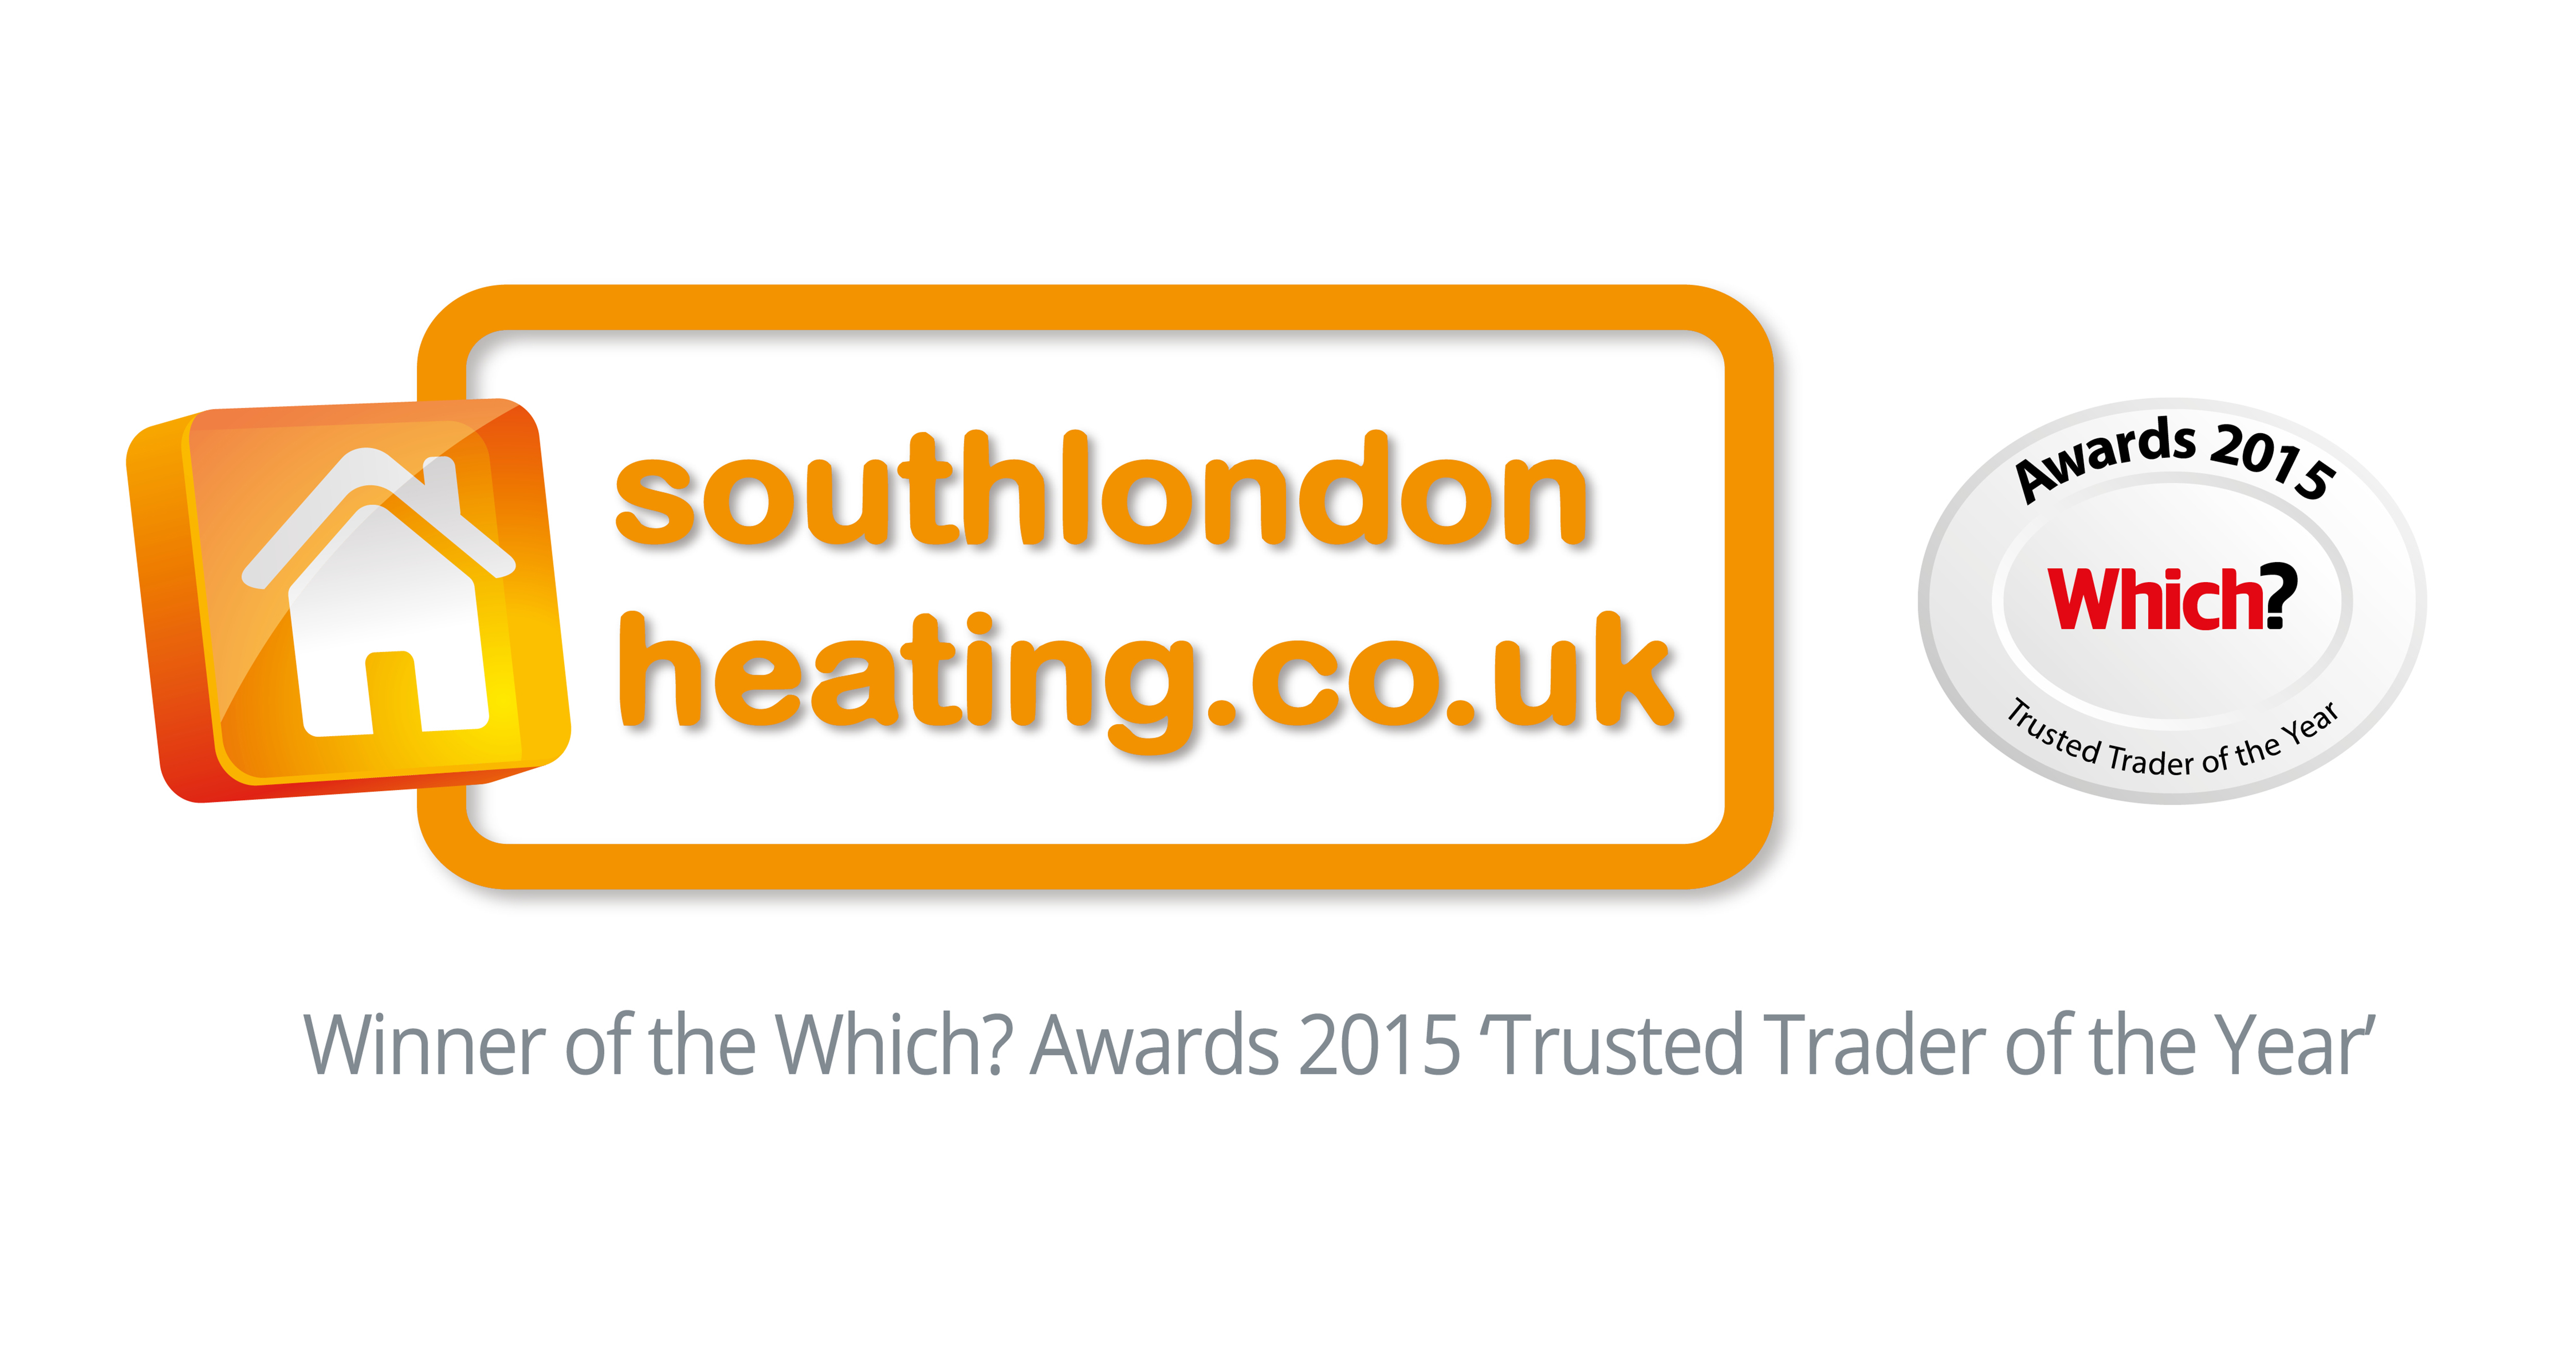 South London Heating Which Awards 2015 Trusted Trader of the Year